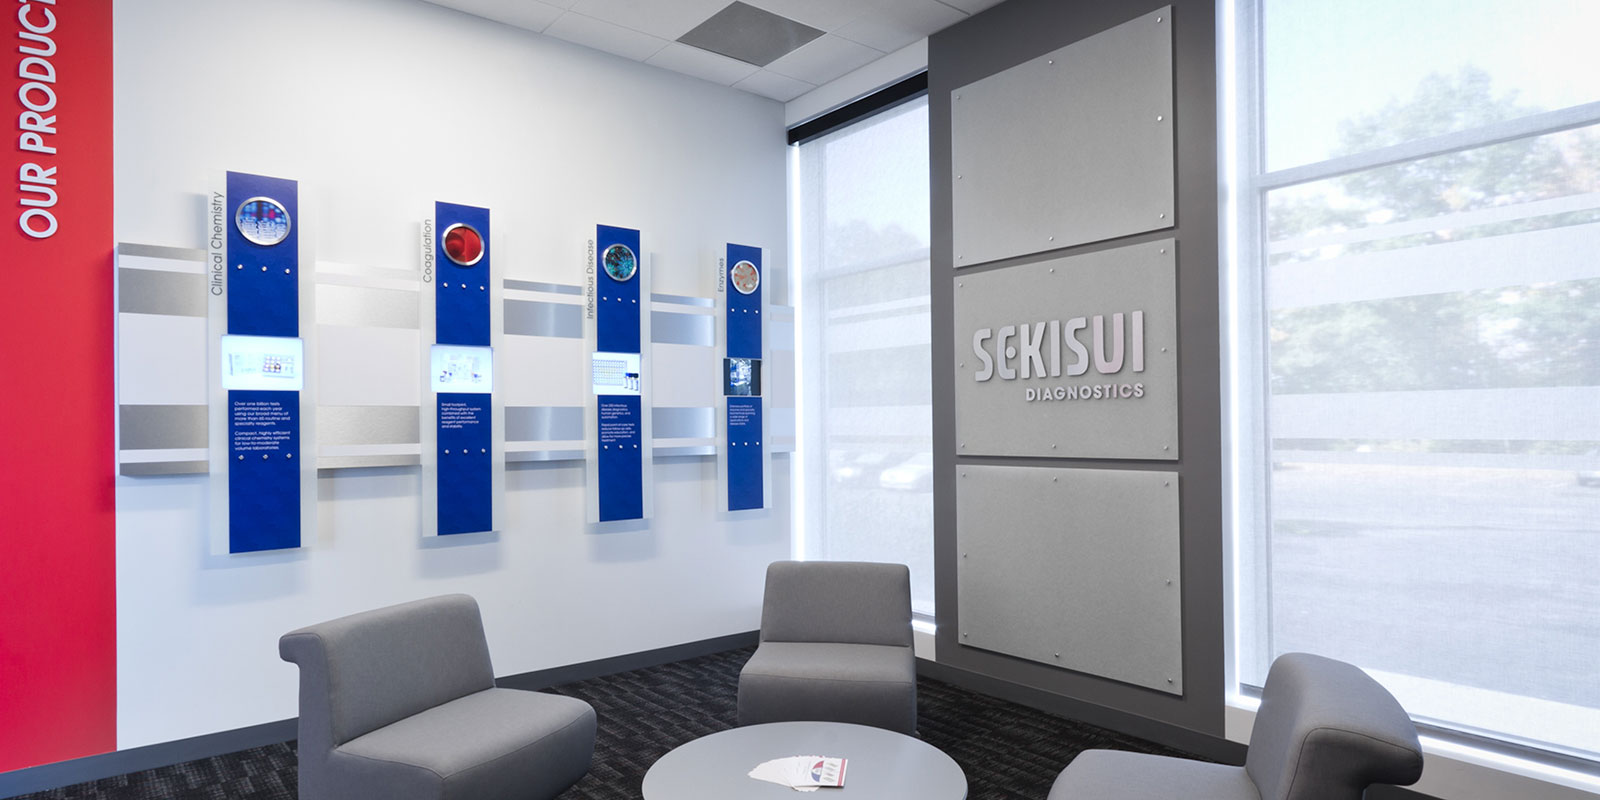 Hill & Partners Commercial Branded Environment for Sekisui